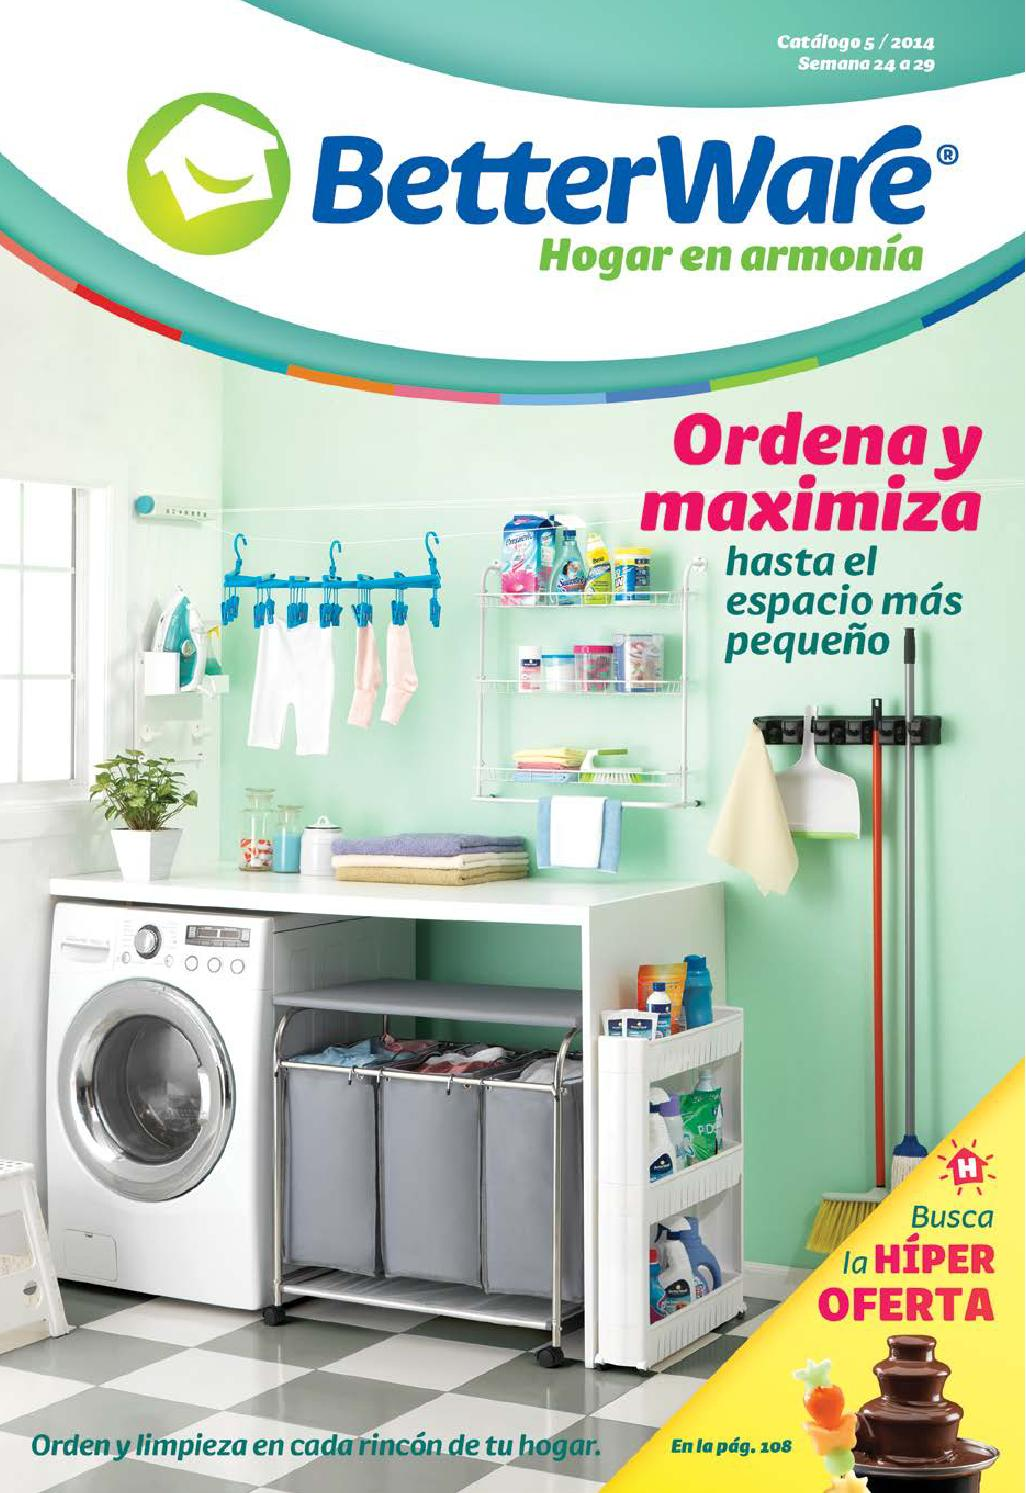 Betterware catalogo 5 by betterware cuernavaca morelos issuu - Todos los productos de ikea ...